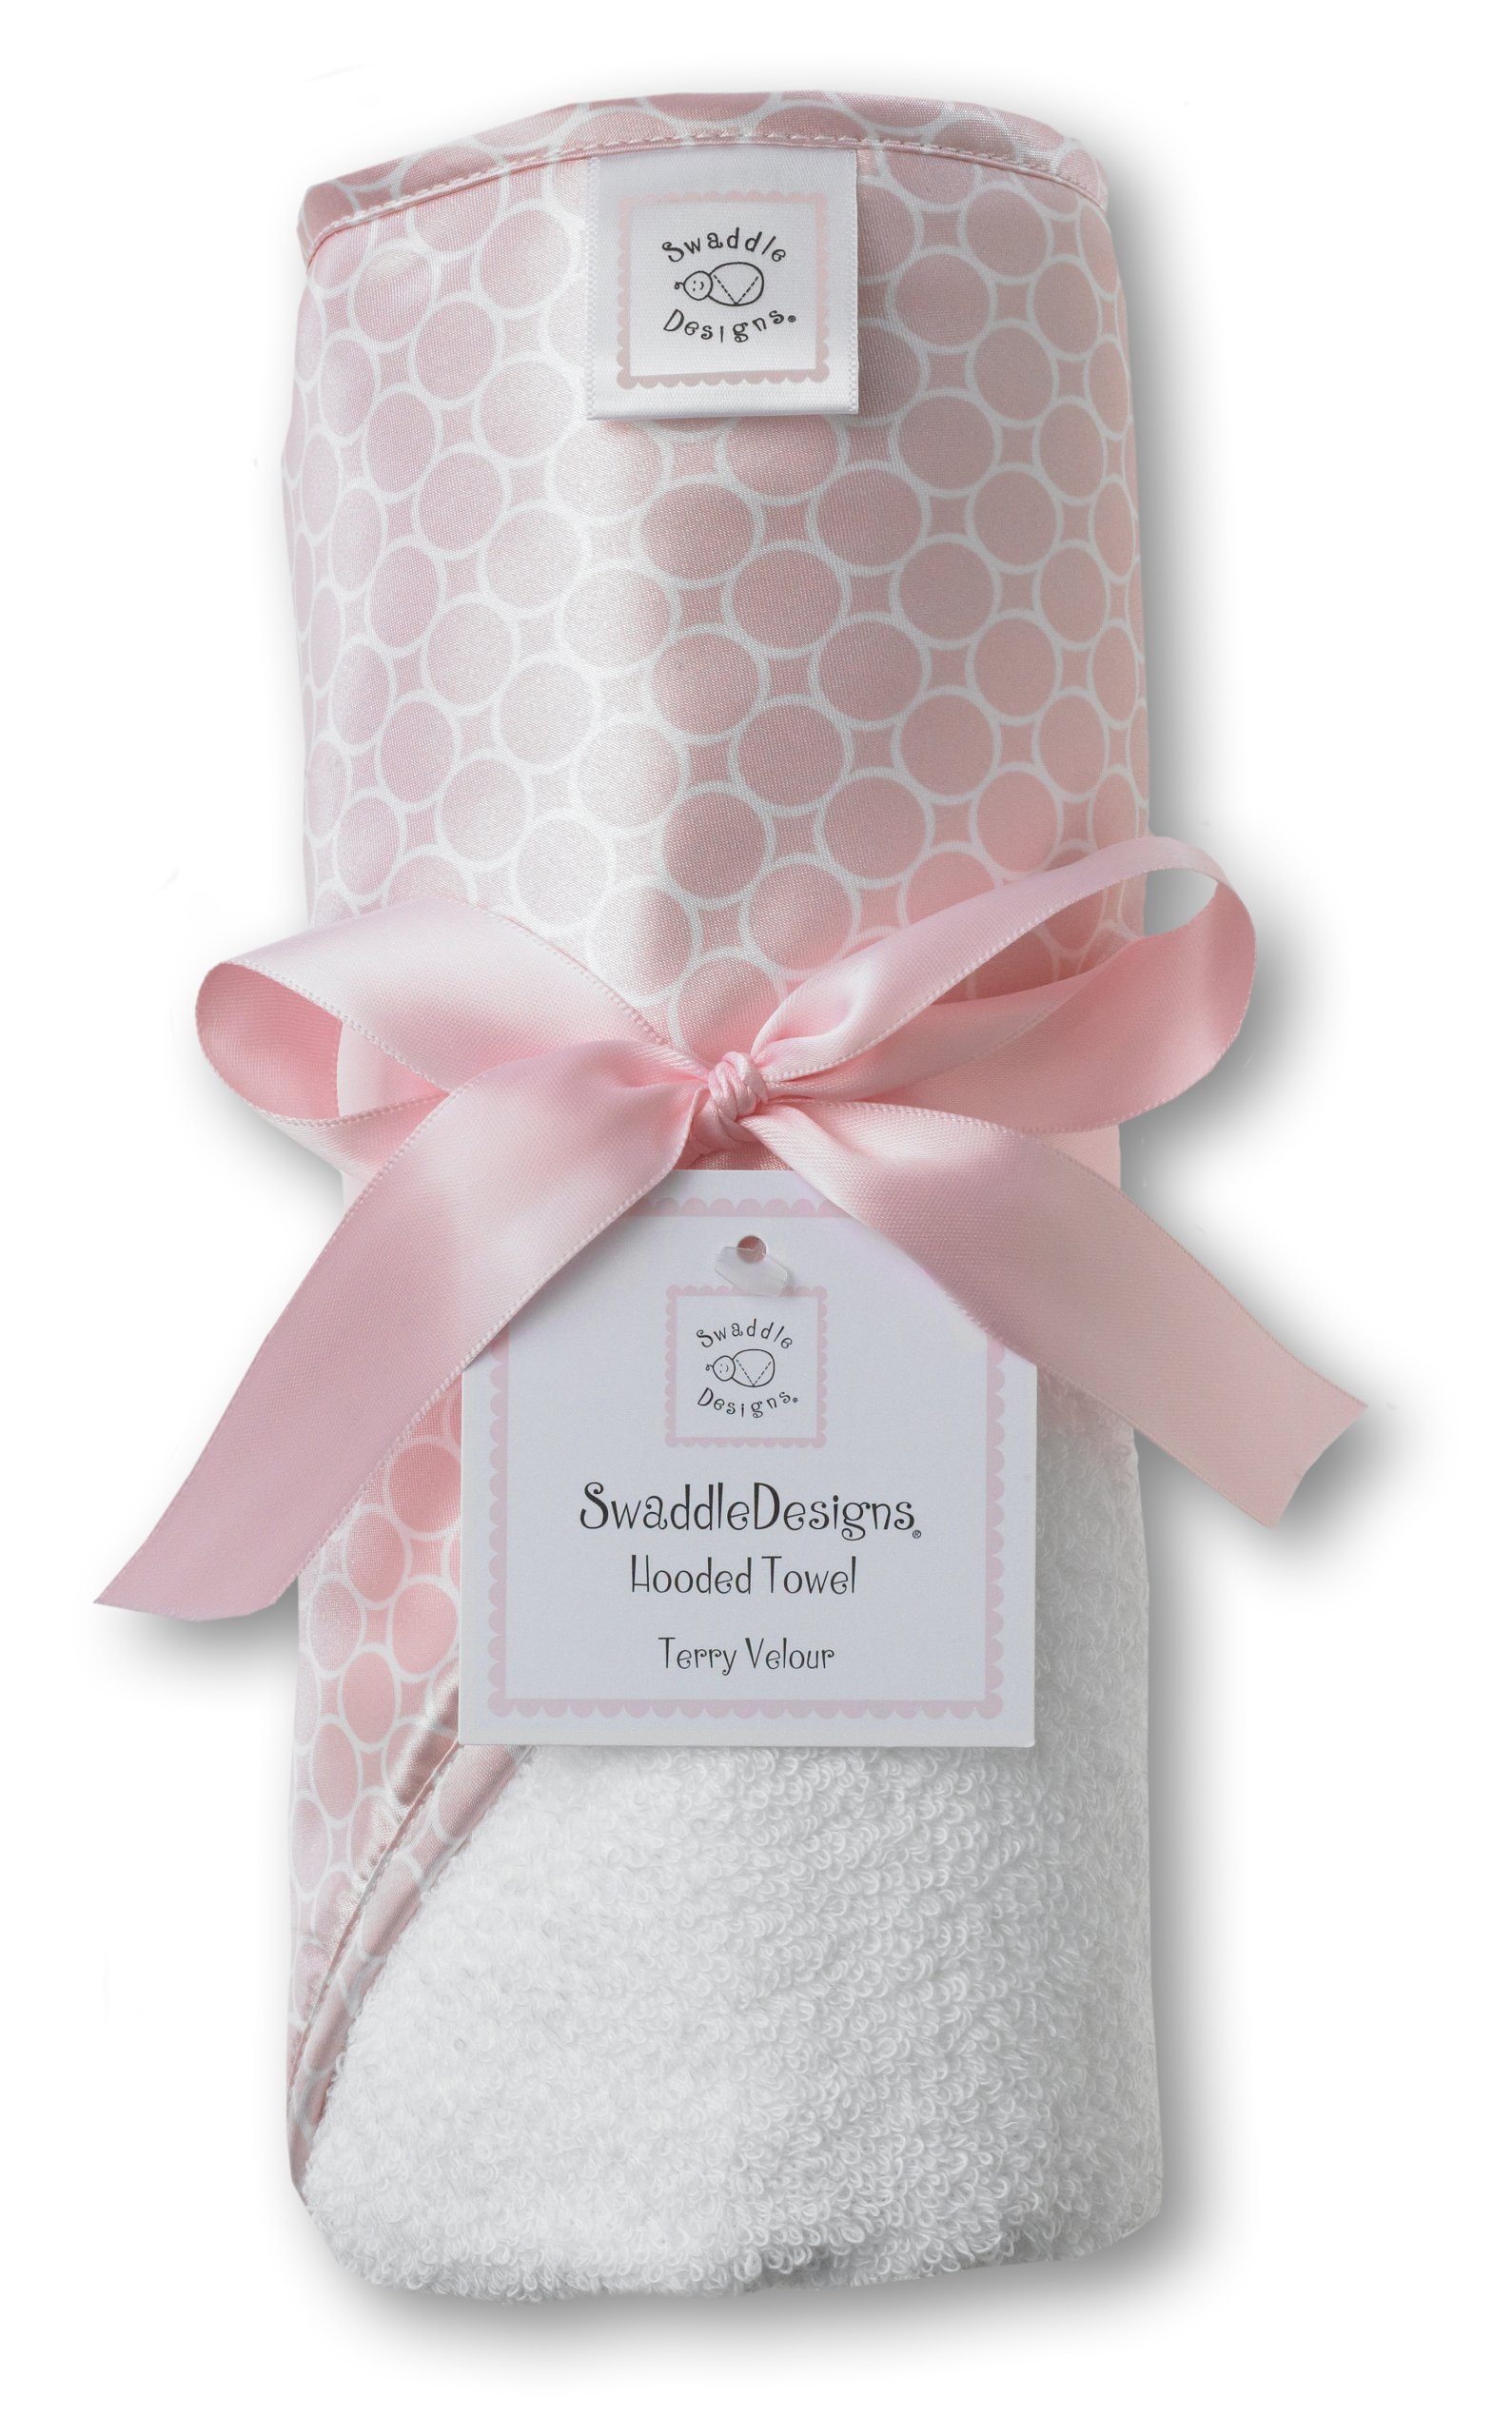 SwaddleDesigns Cotton Terry Velour Baby Hooded Towel, Pastel Pink Mini Mod Circles by SwaddleDesigns